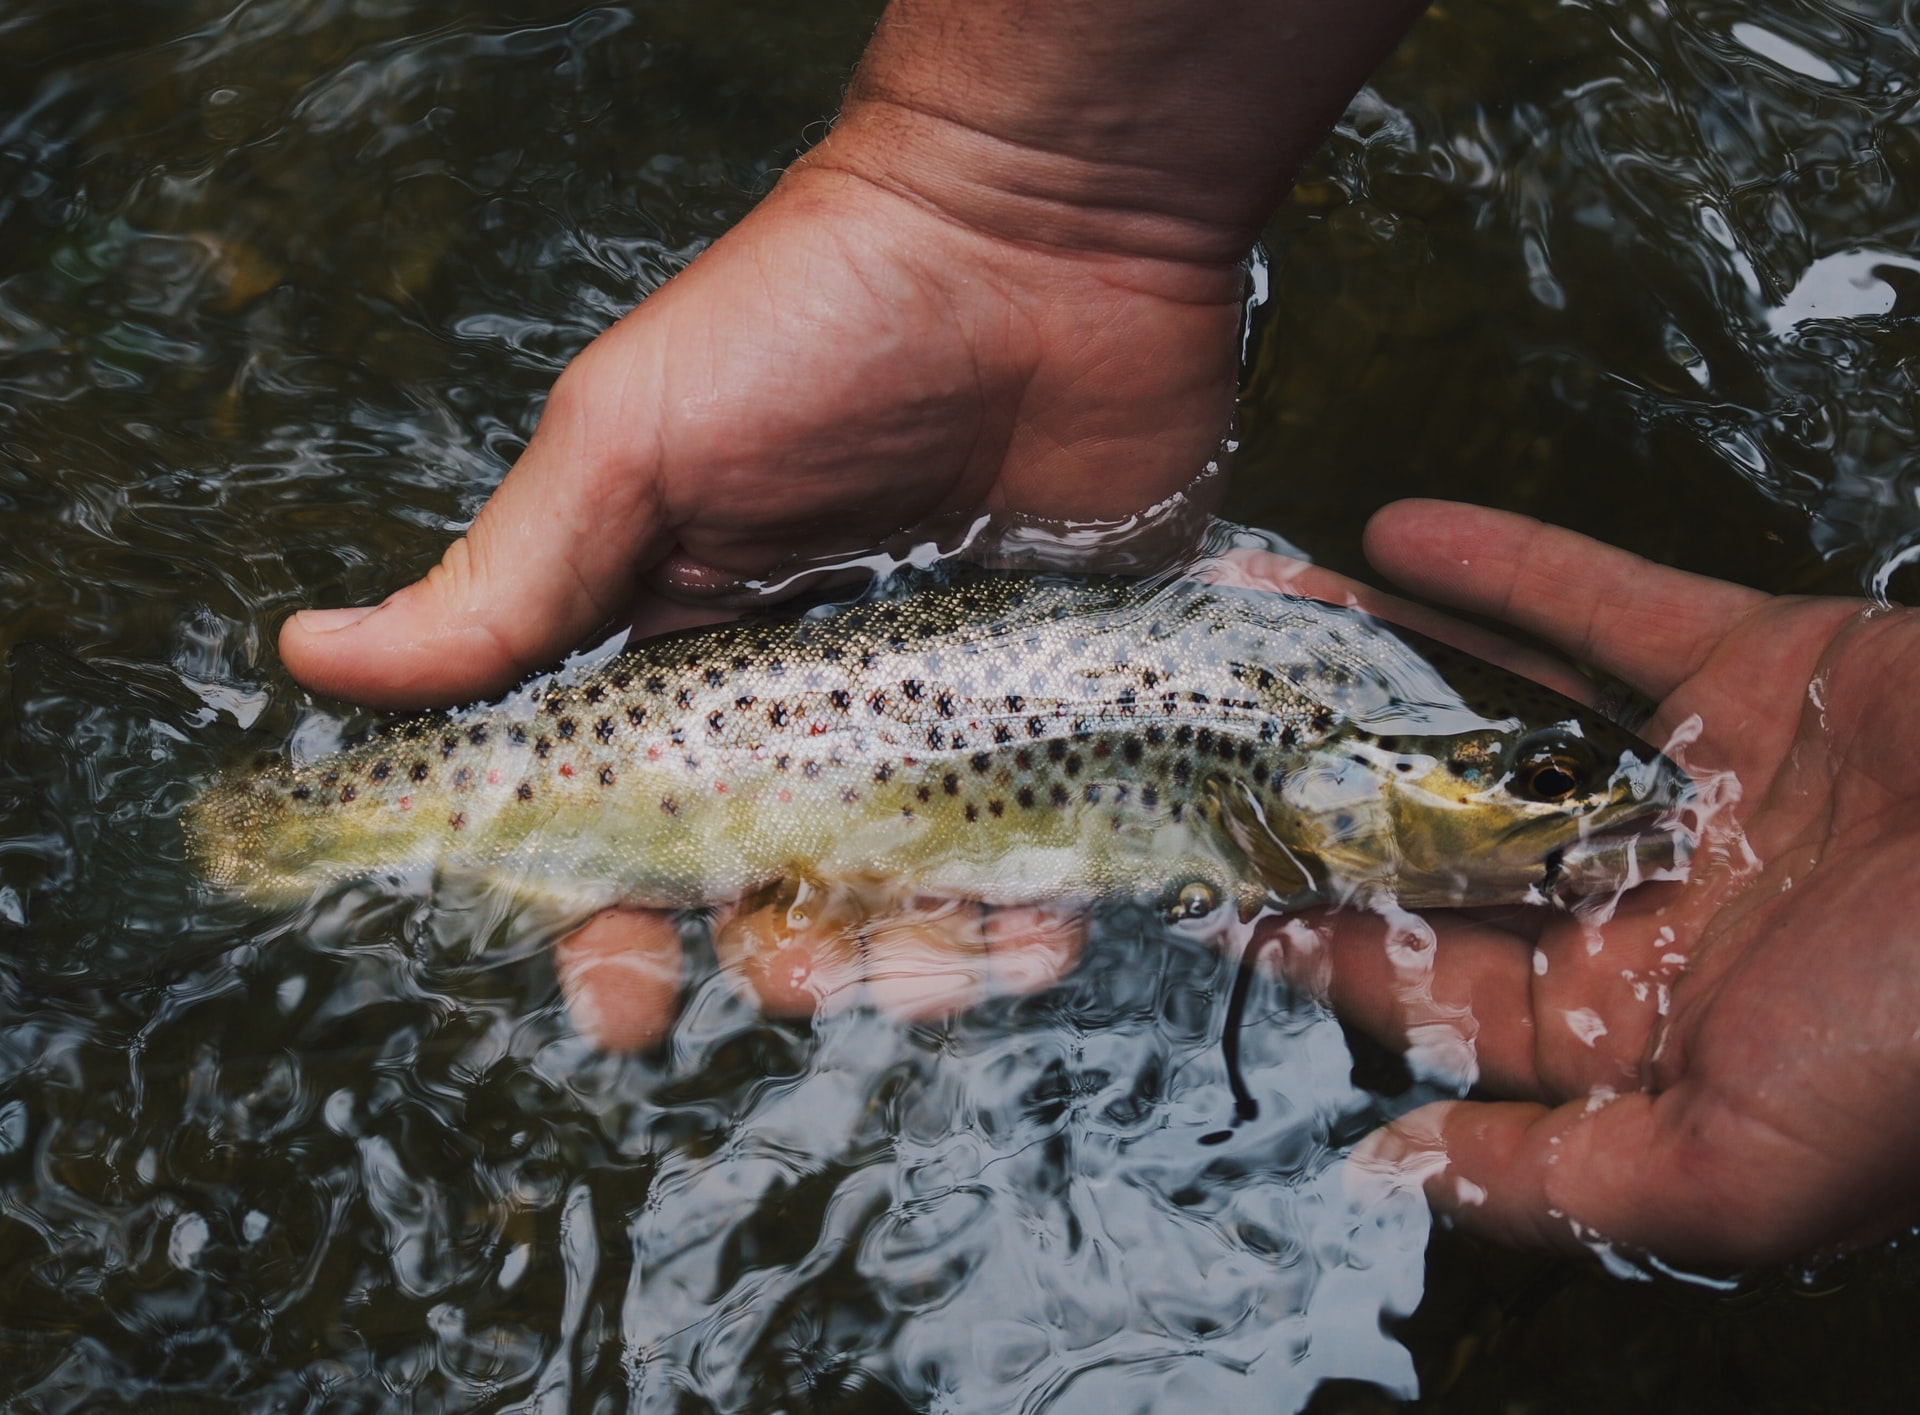 do trout have teeth, trout teeth, do all trout have teeth